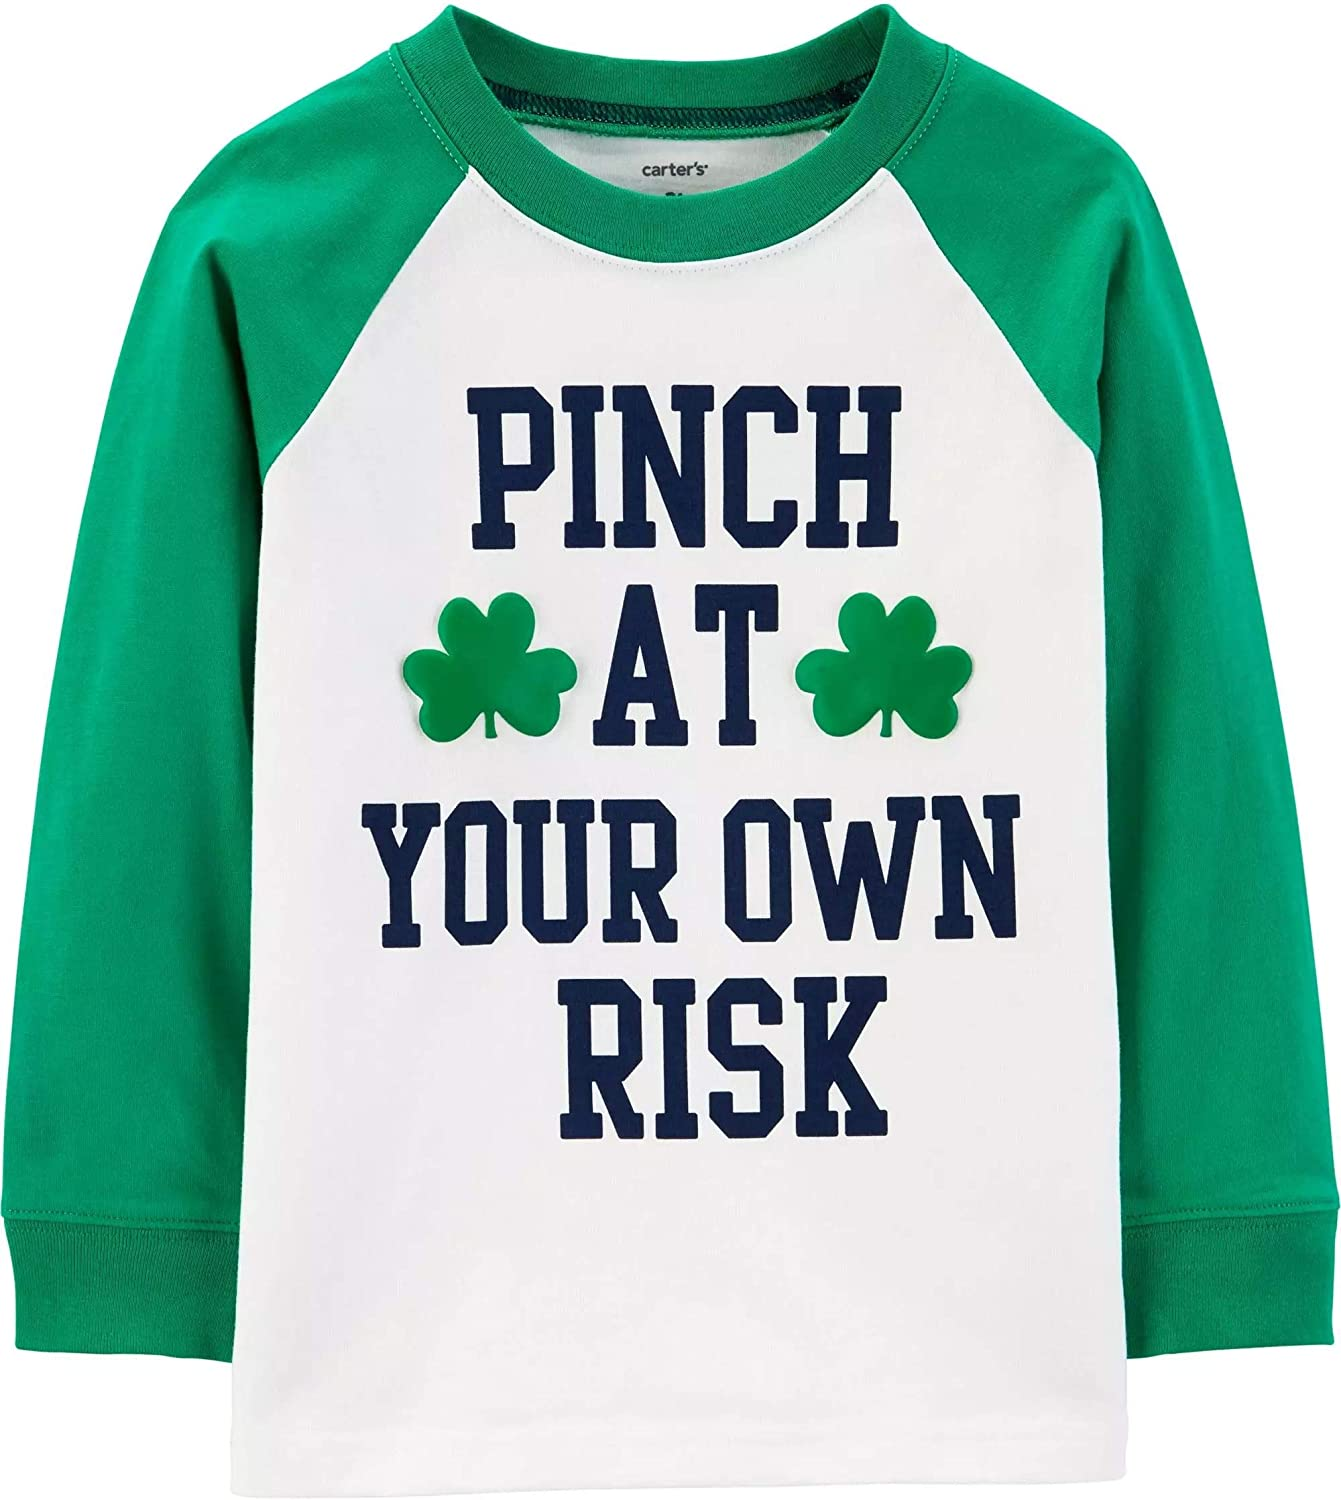 Carter's Boys' St Patrick's Day Graphic Tee